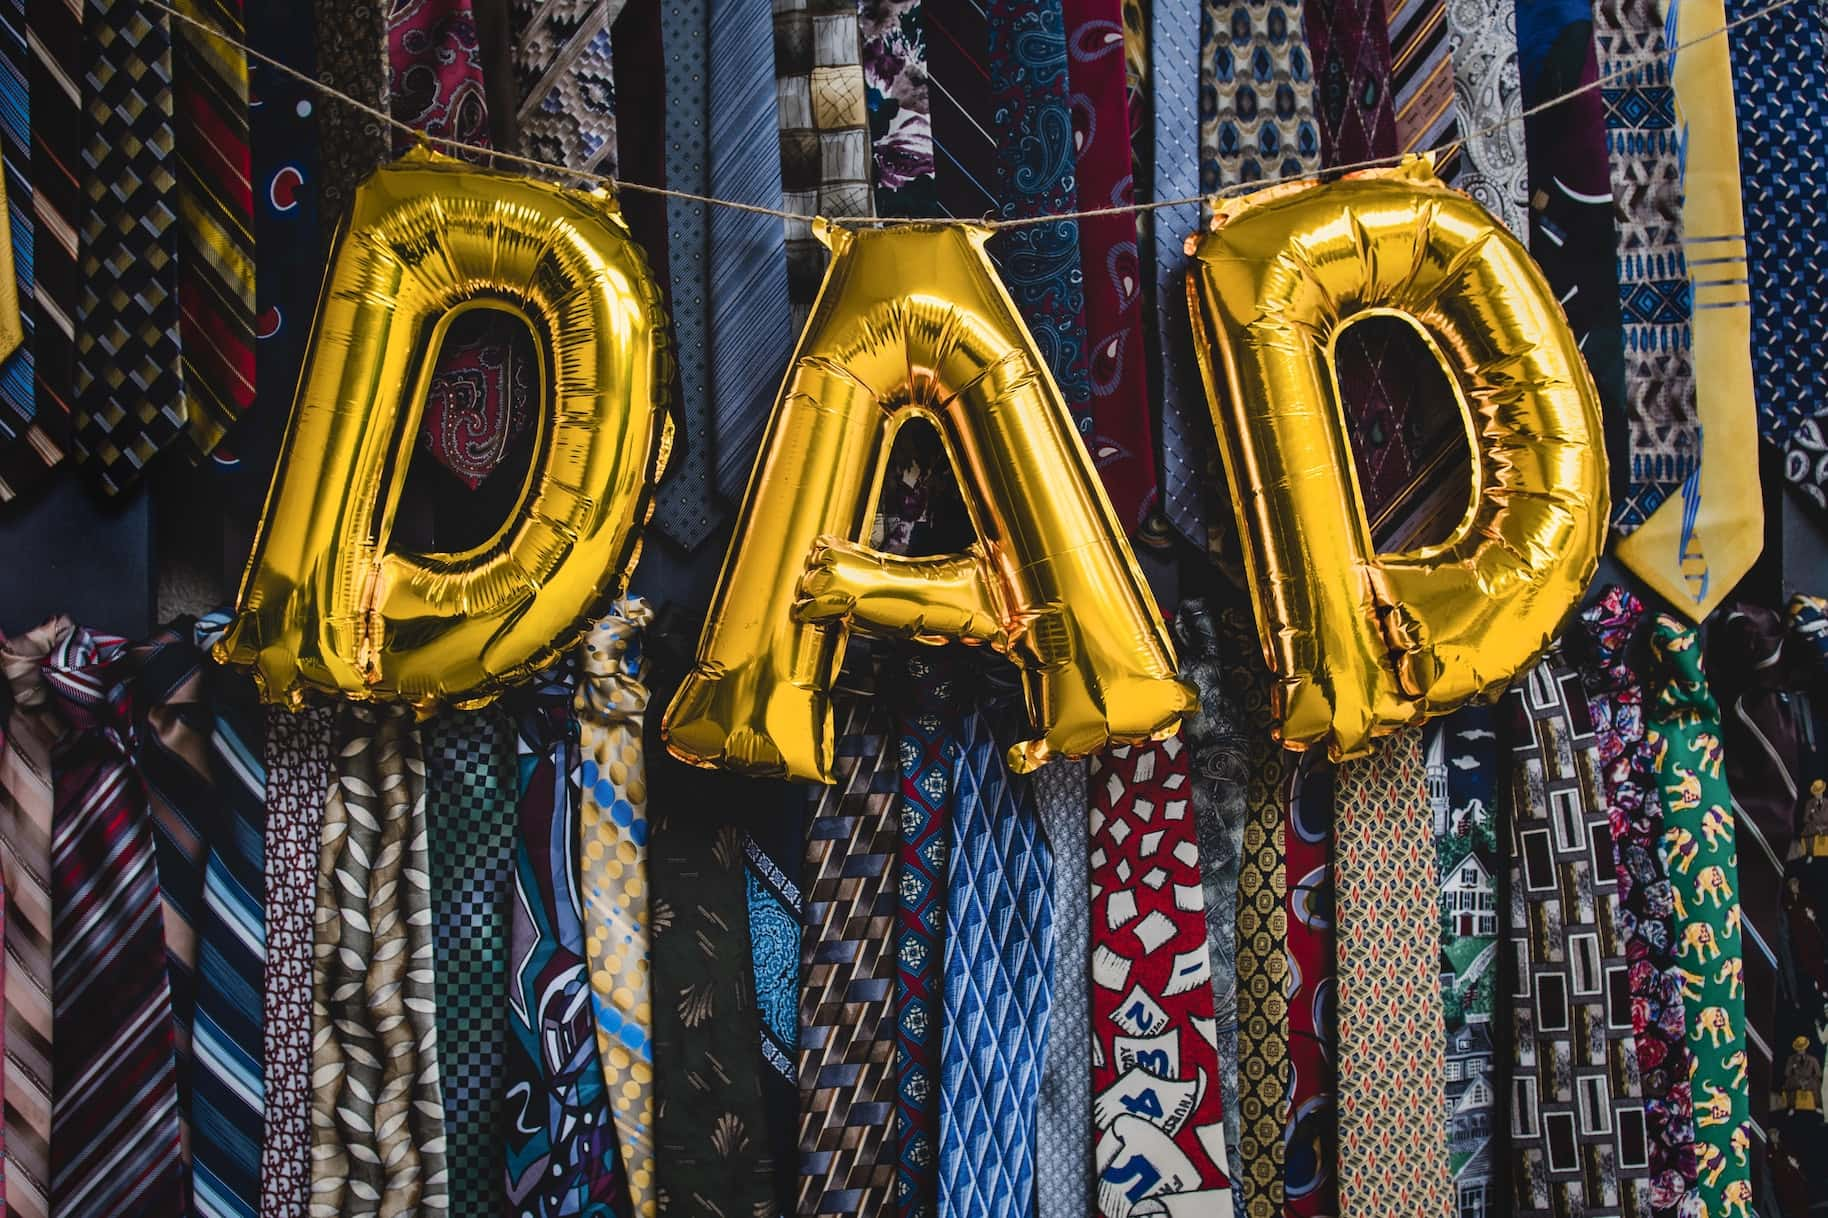 Dad balloons in front of ties